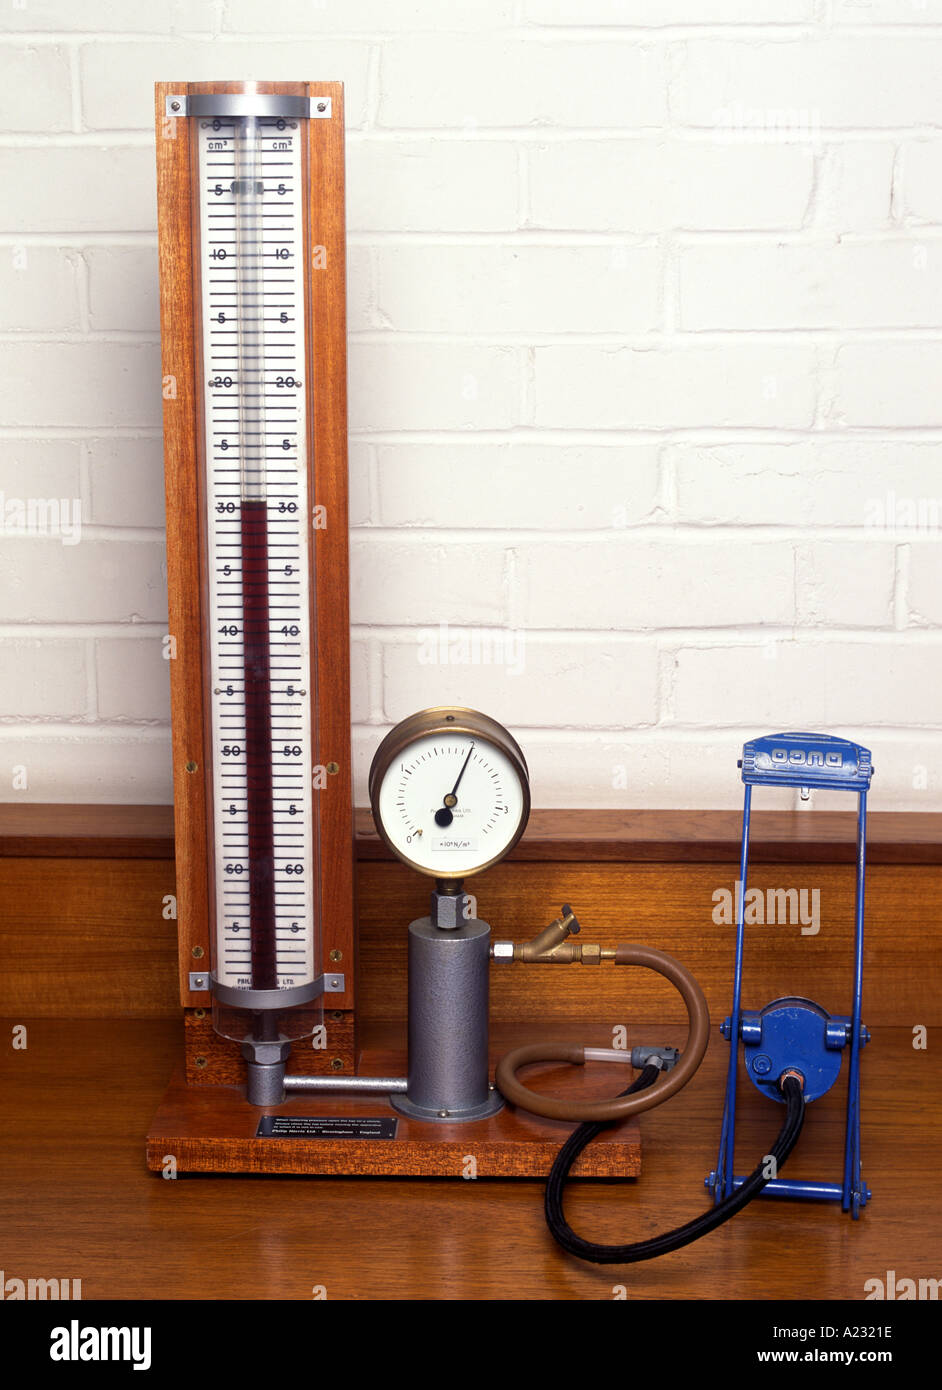 Boyle's law apparatus for investigating the relationship beween the pressure and the volume of a gas - Stock Image